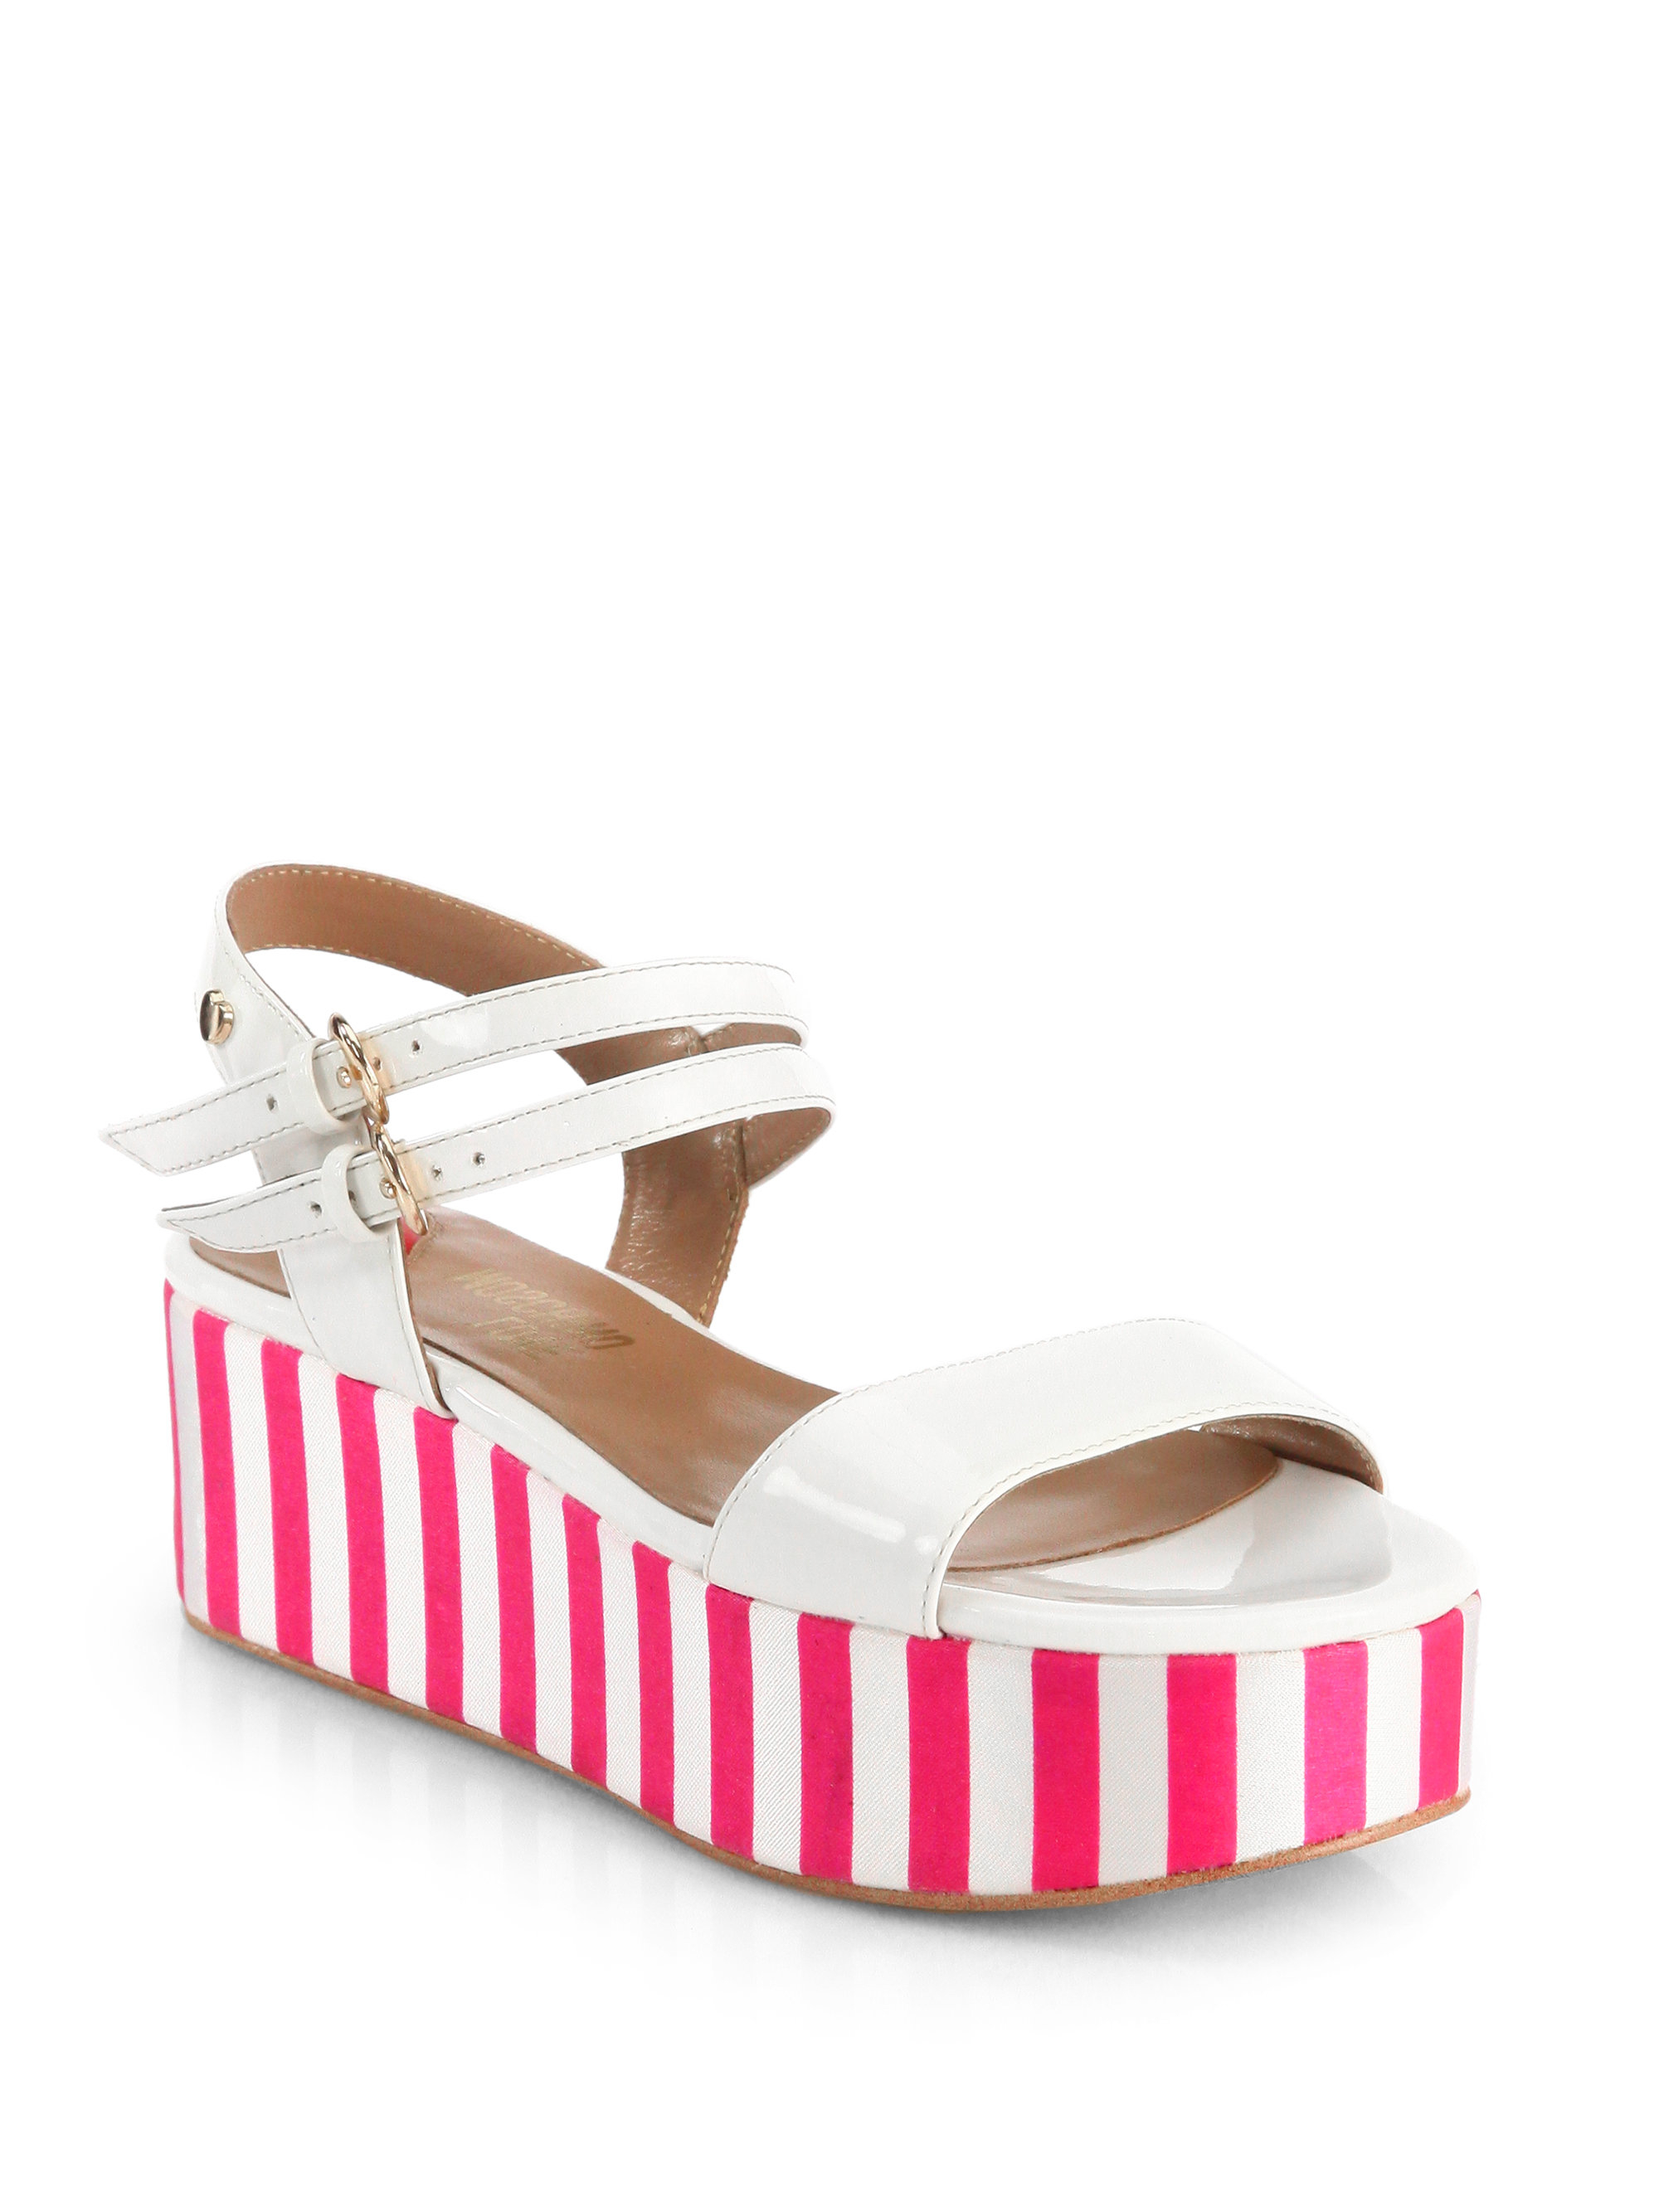 25439954012 Lyst - Love Moschino Patent Leather Striped Platform Sandals in Pink